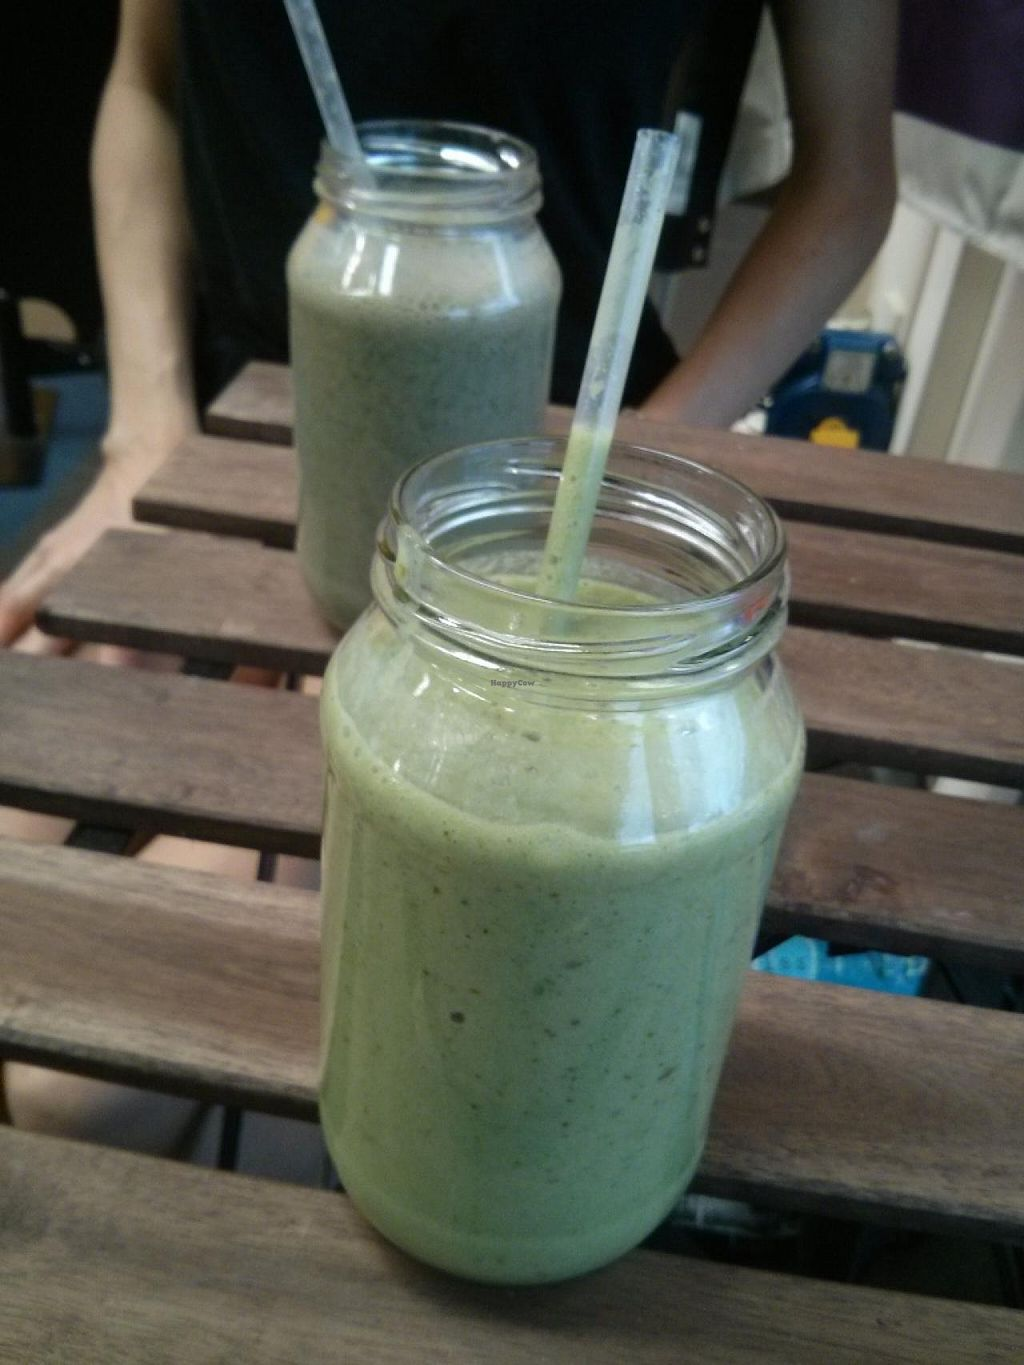 """Photo of CLOSED: 48 Degrees Raw Cafe  by <a href=""""/members/profile/camerongreen"""">camerongreen</a> <br/>Green smoothie, and Superfoods smoothie in the background <br/> January 22, 2014  - <a href='/contact/abuse/image/44078/62948'>Report</a>"""